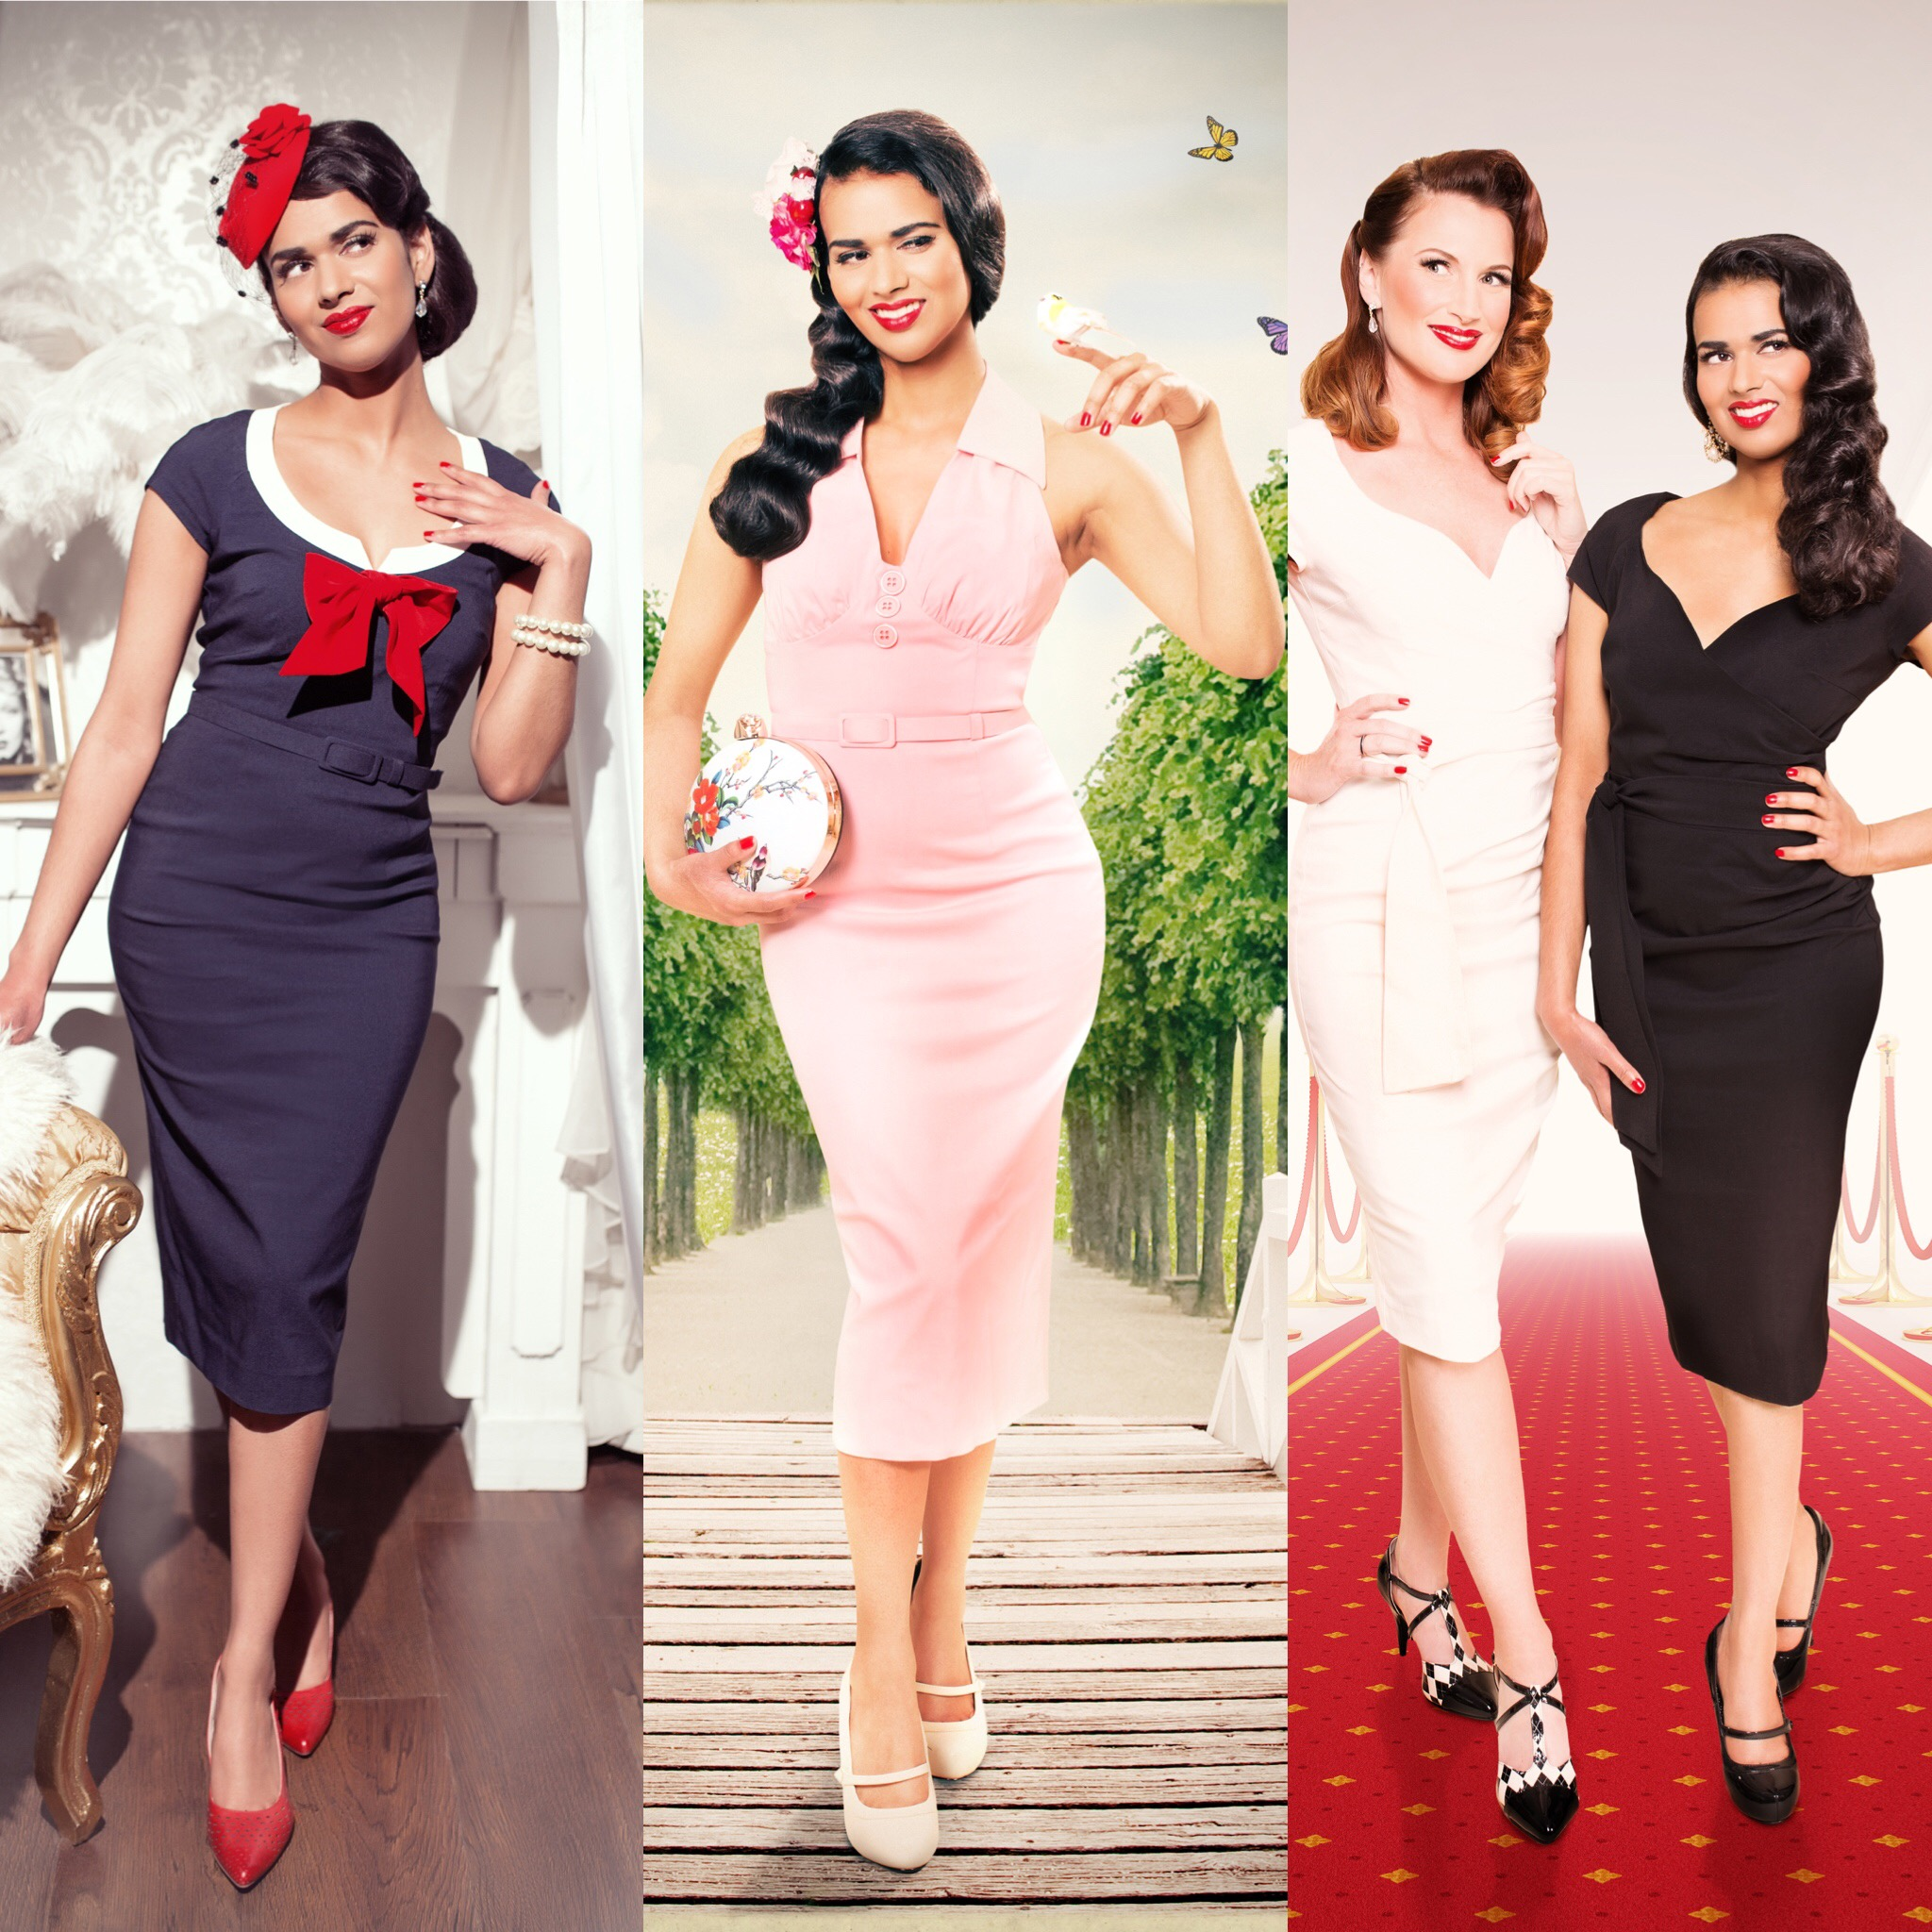 Vintage Diva photoshoot Hamburg end results merged